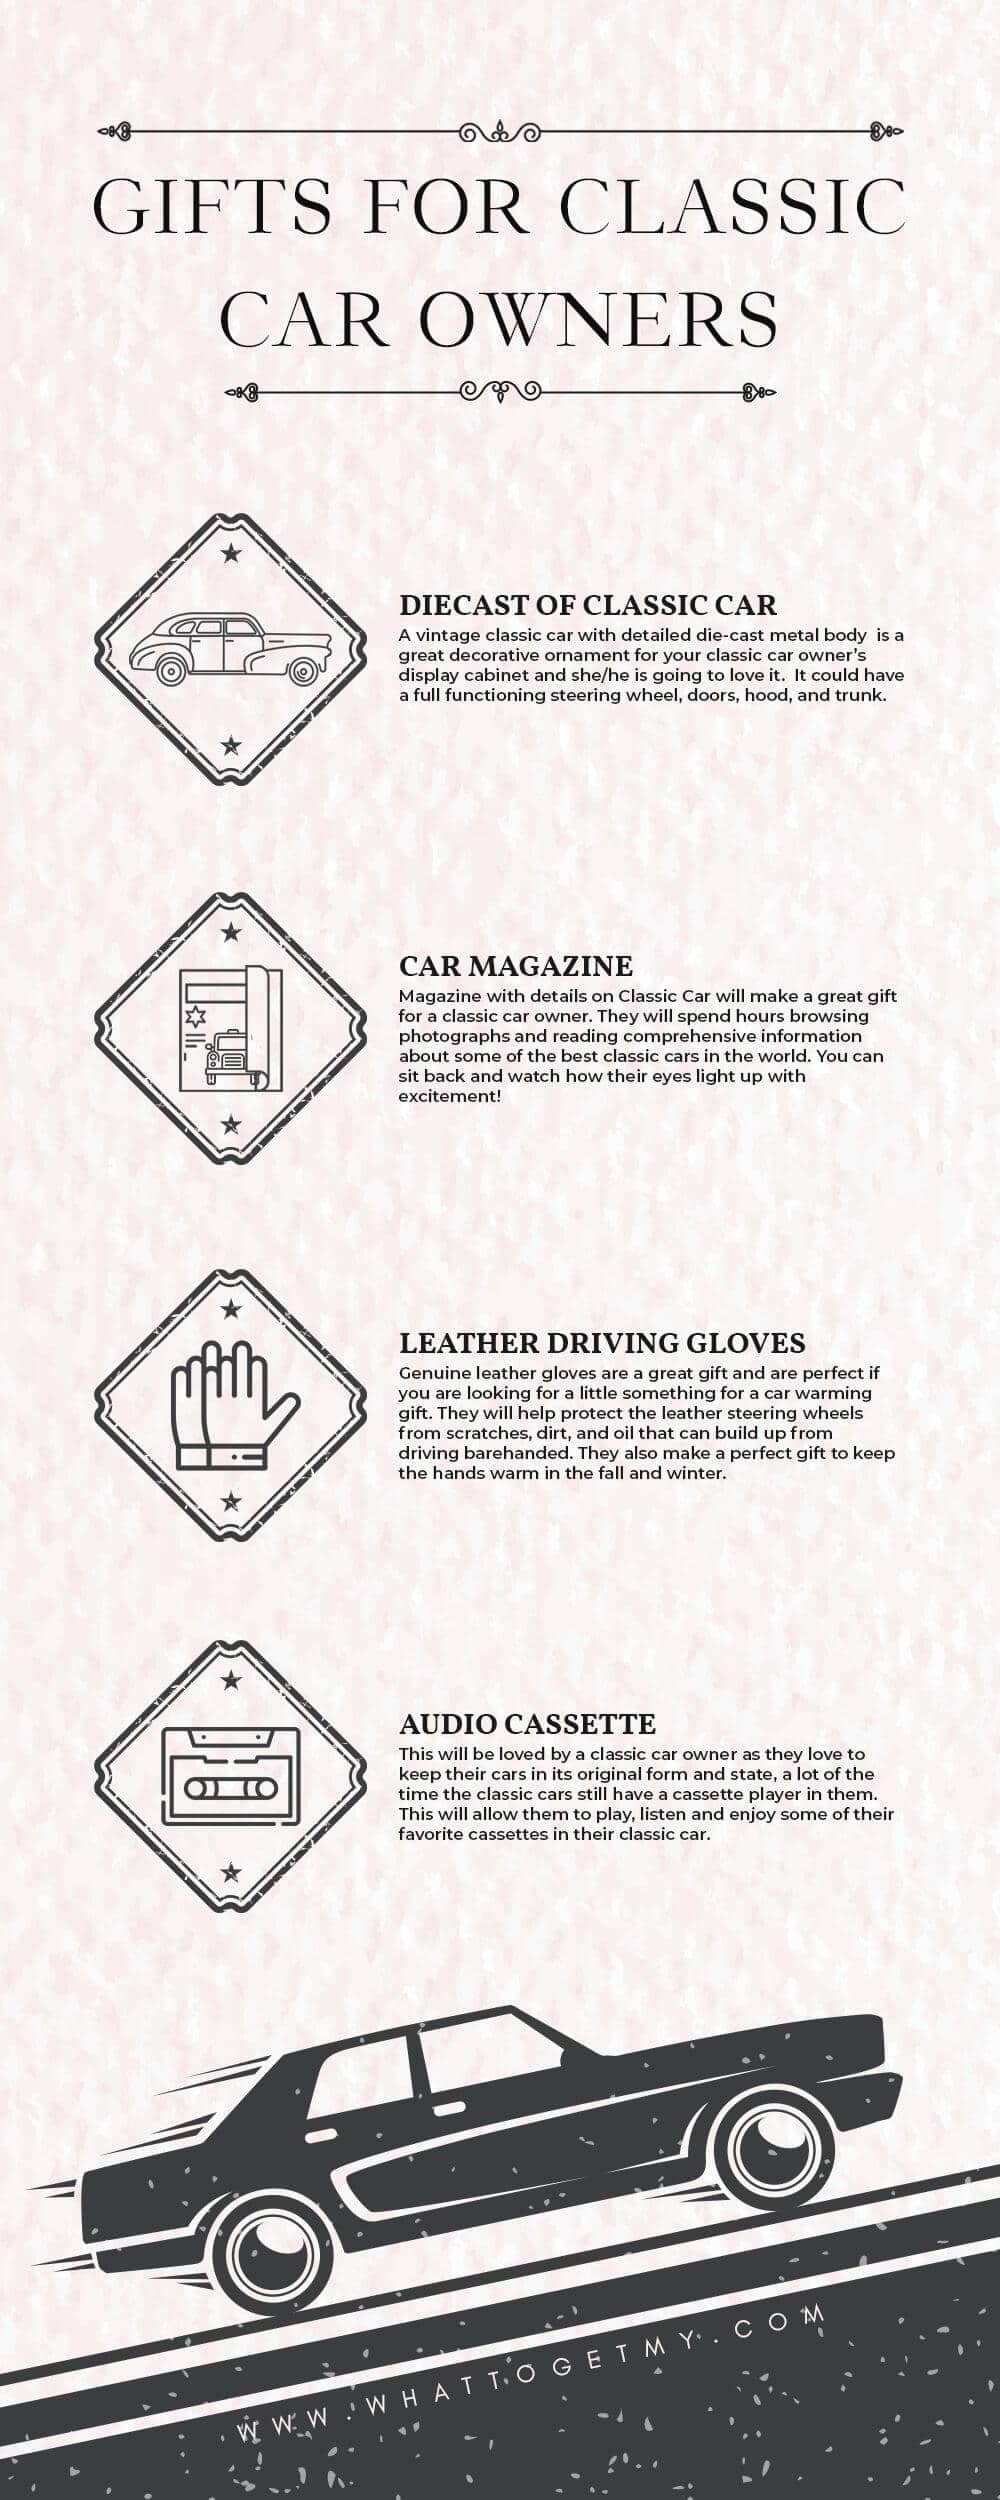 Infographic GIFTS FOR CLASSIC CAR OWNERS